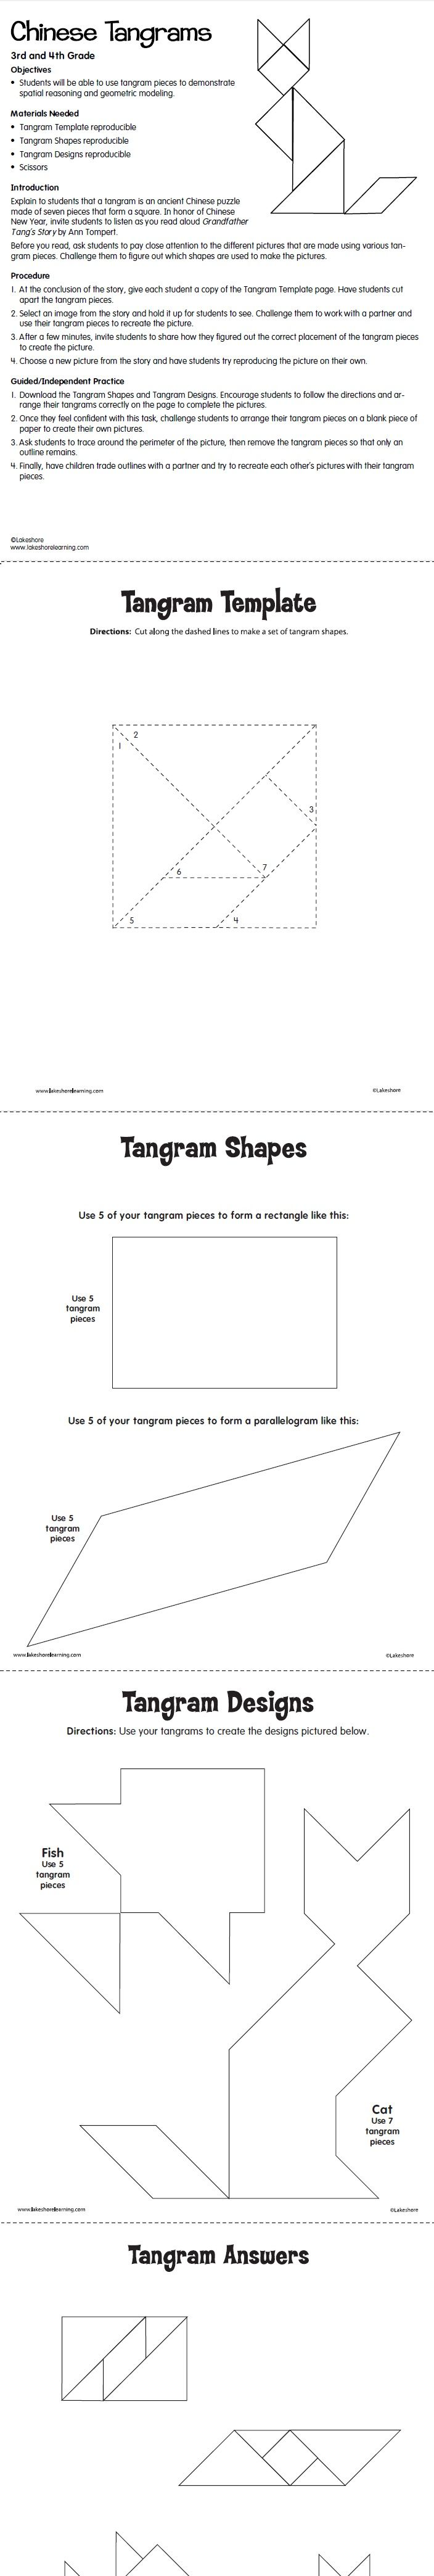 Chinese Tangrams Lesson Plan from Lakeshore Learning